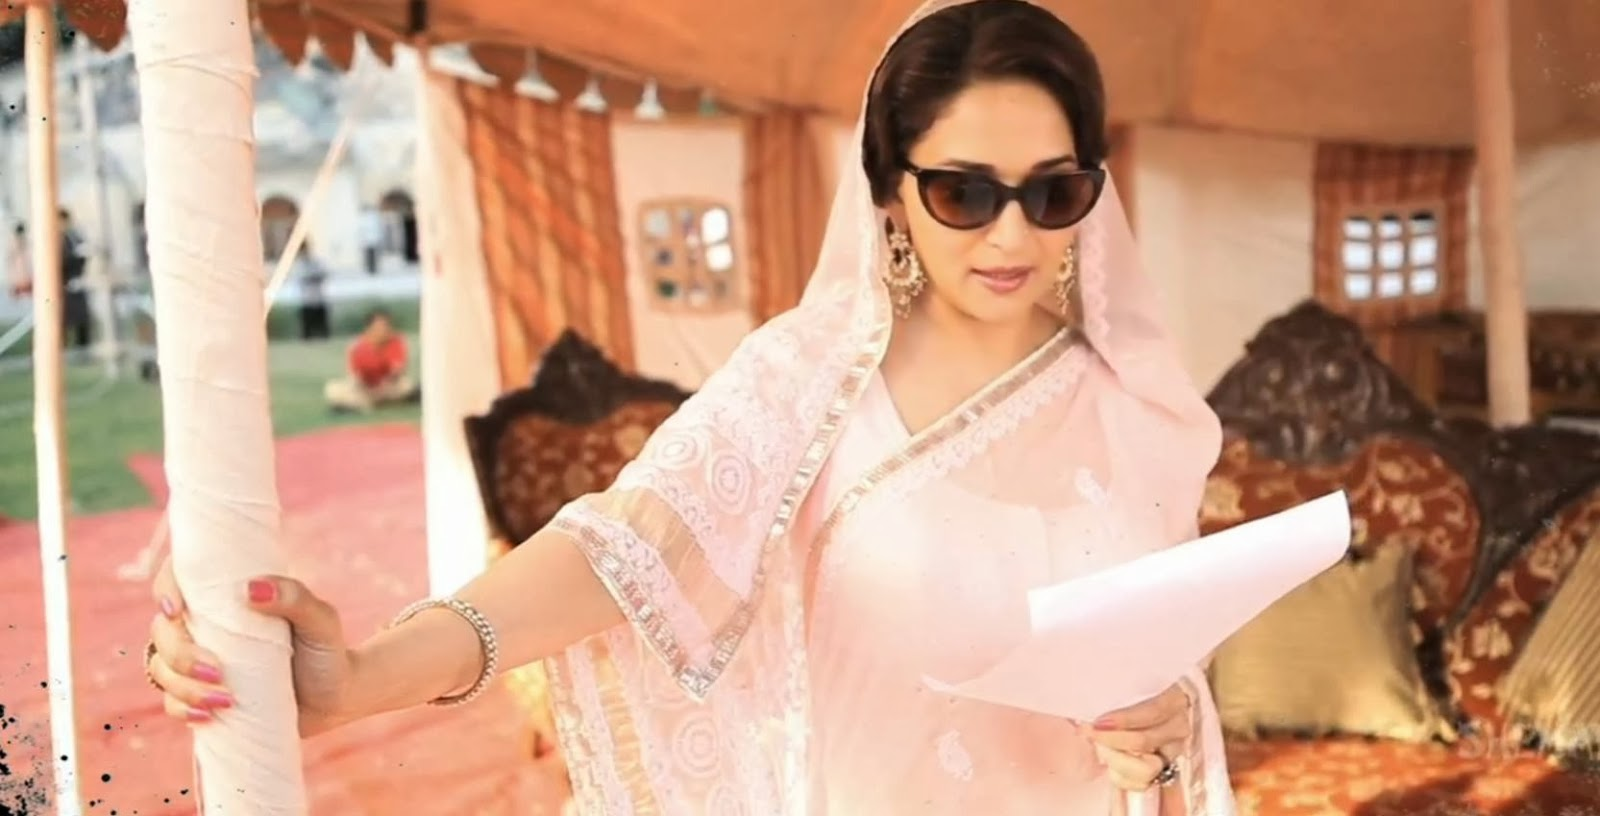 Dedh Ishqiya style guide - Madhuri Dixit-Nene in a gorgeous pink lucknowi sari